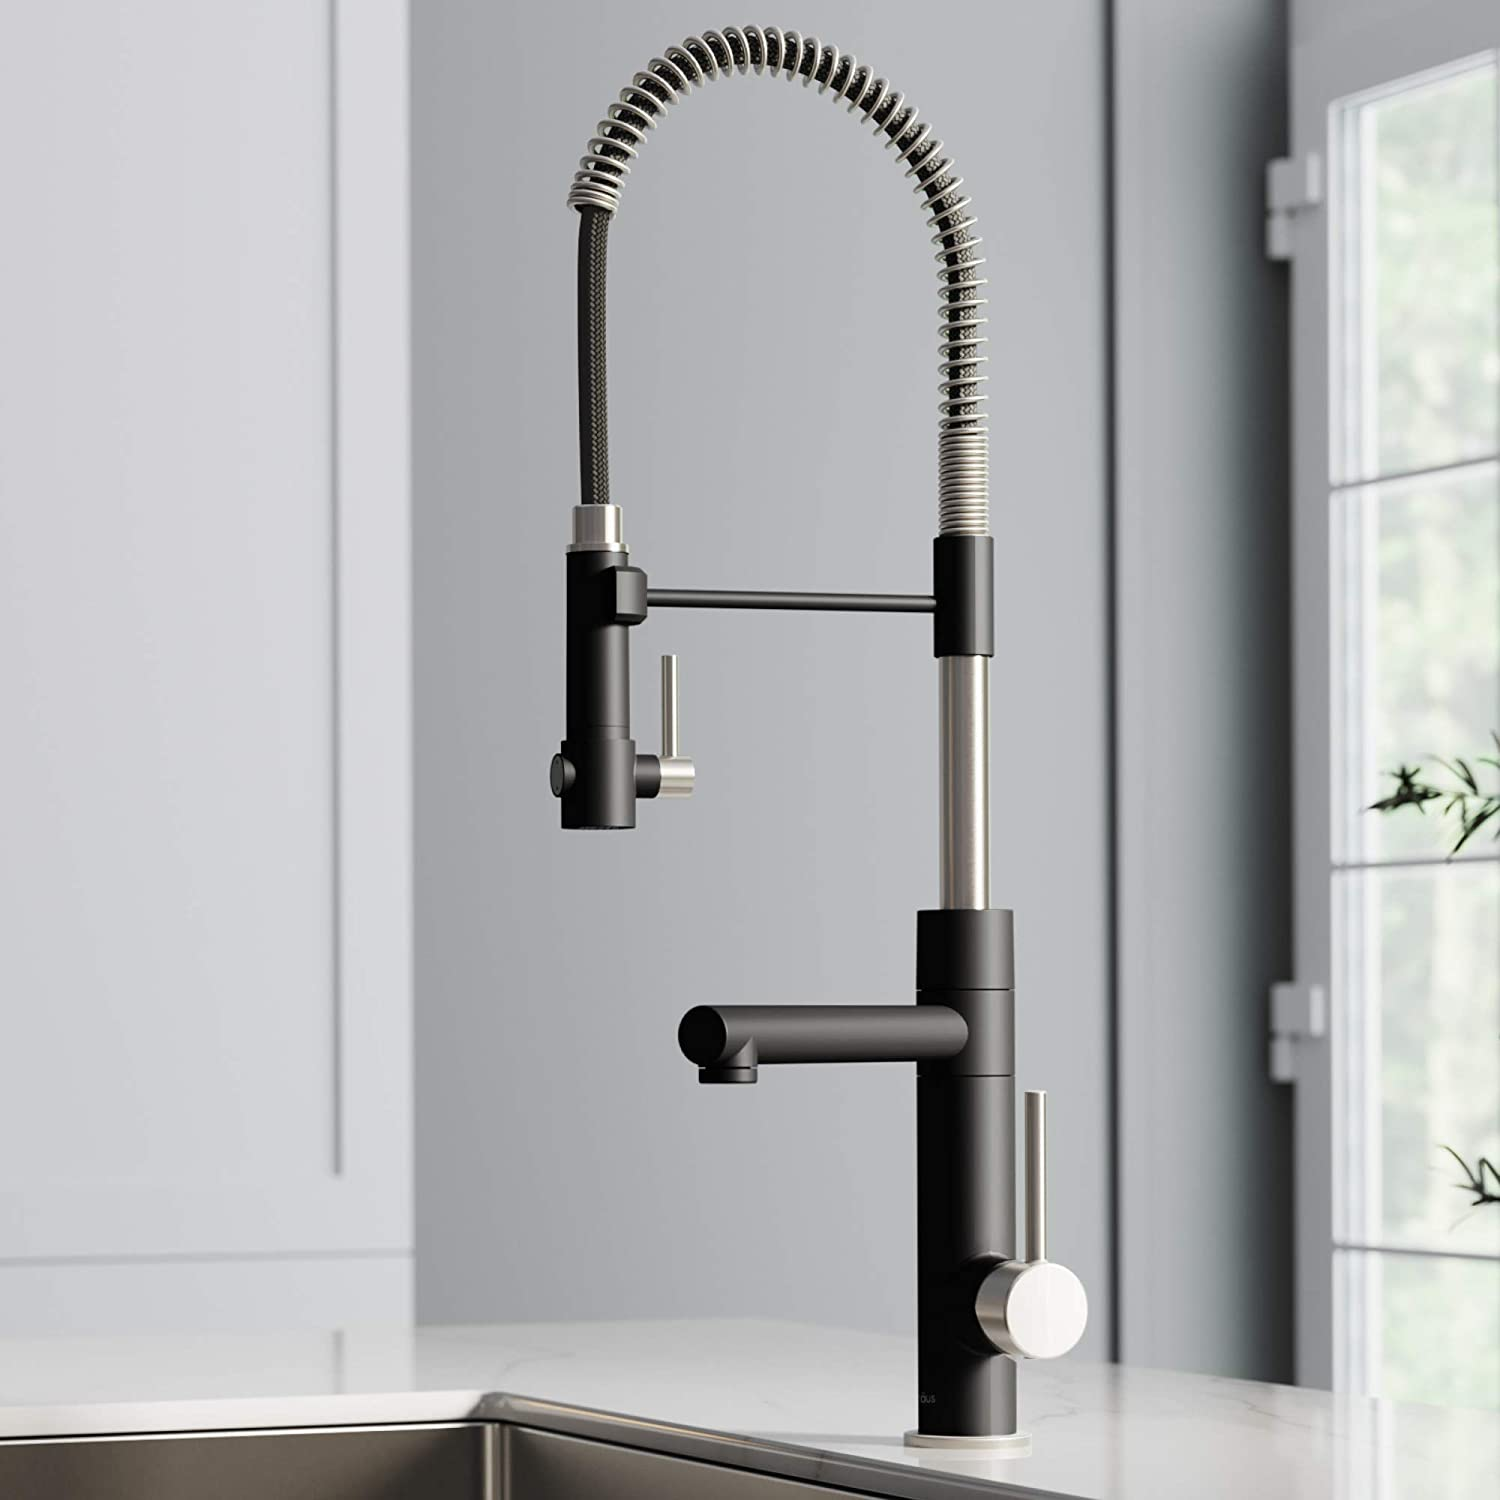 KRAUS KPF-1603SFSMB New Artec Pro 2-Function Commercial Style Pre-Rinse Kitchen Faucet with Pull-Down Spring Spout and Pot Filler 24.75 inch Spot Free Finish Stainless Steel/Matte Black